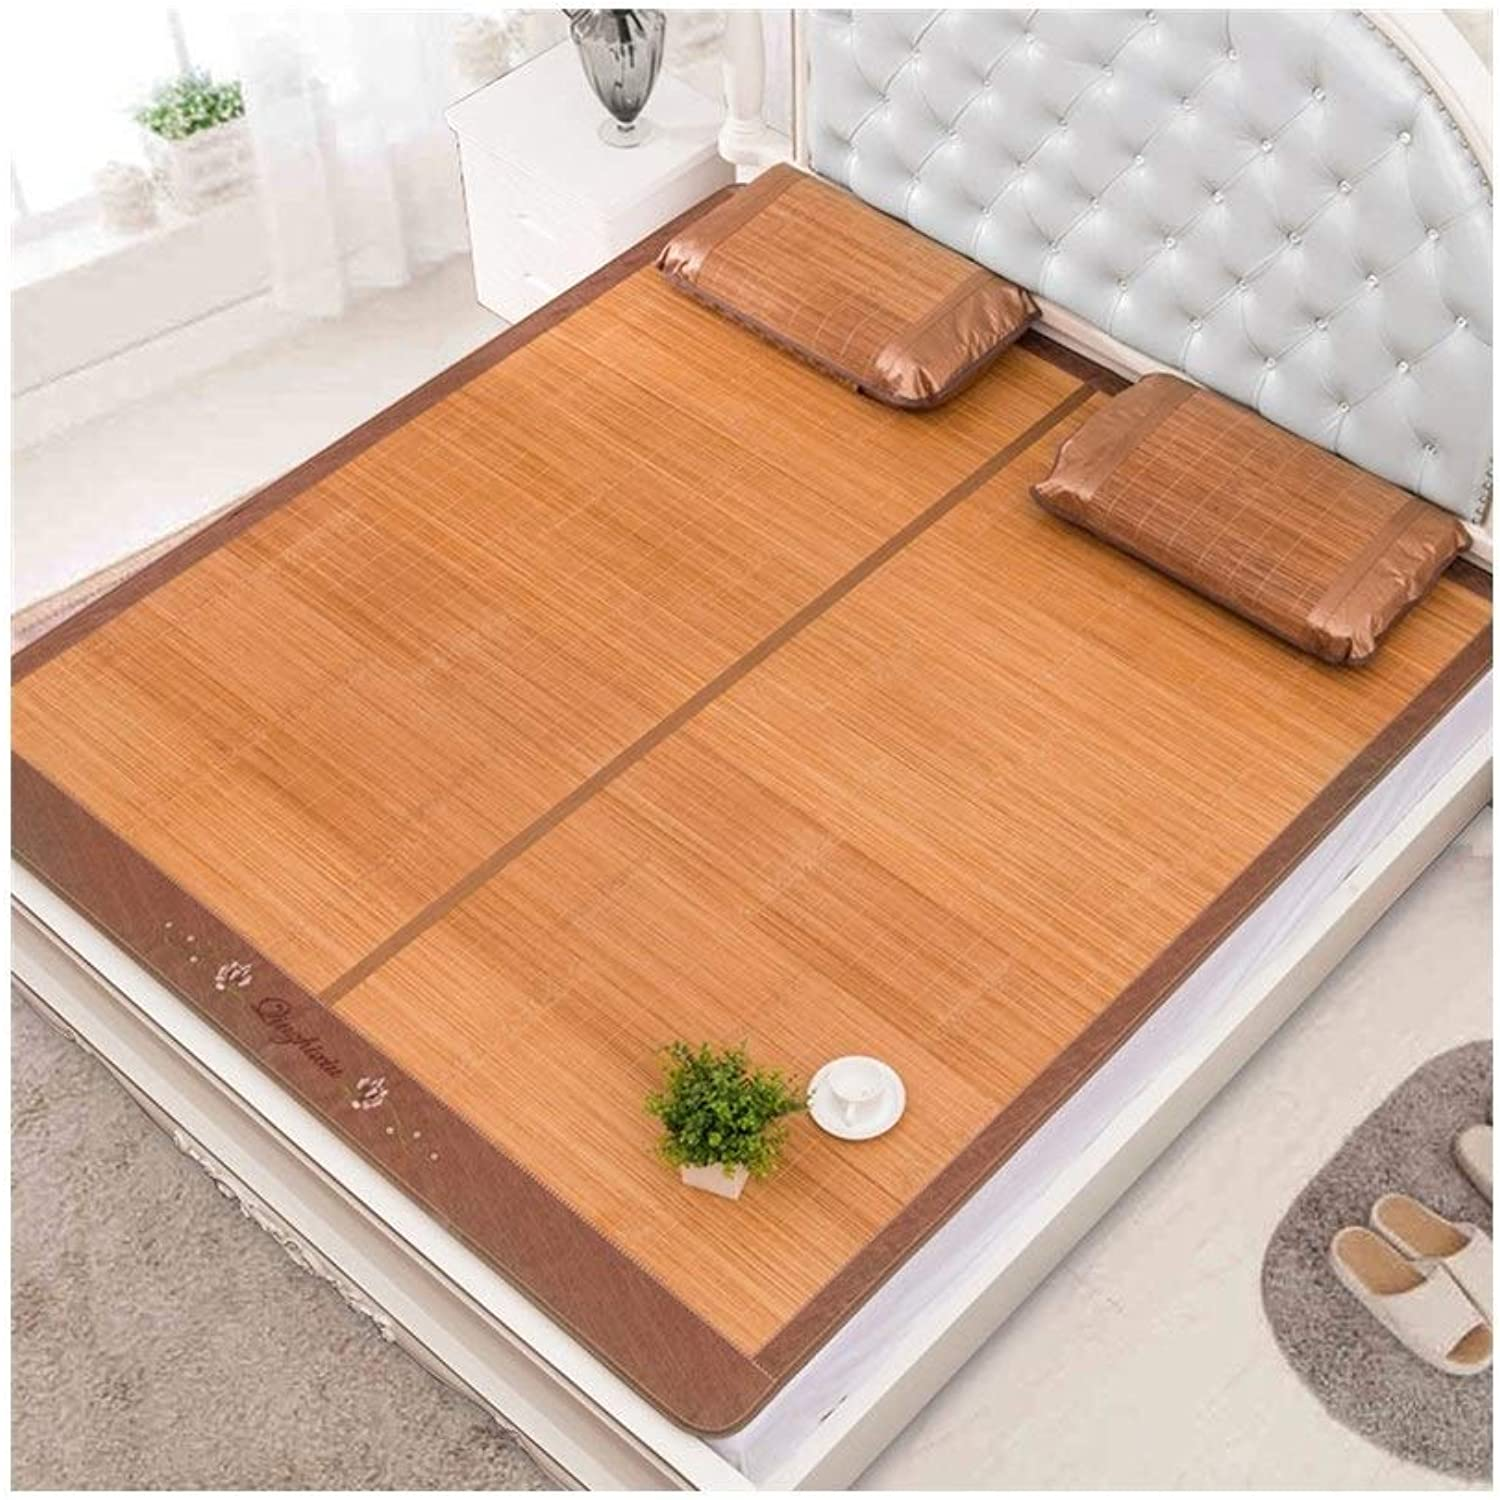 Bedding Straw mat Summer Sleeping mat Mattress Carbonization Process Foldable Double-Sided use mat